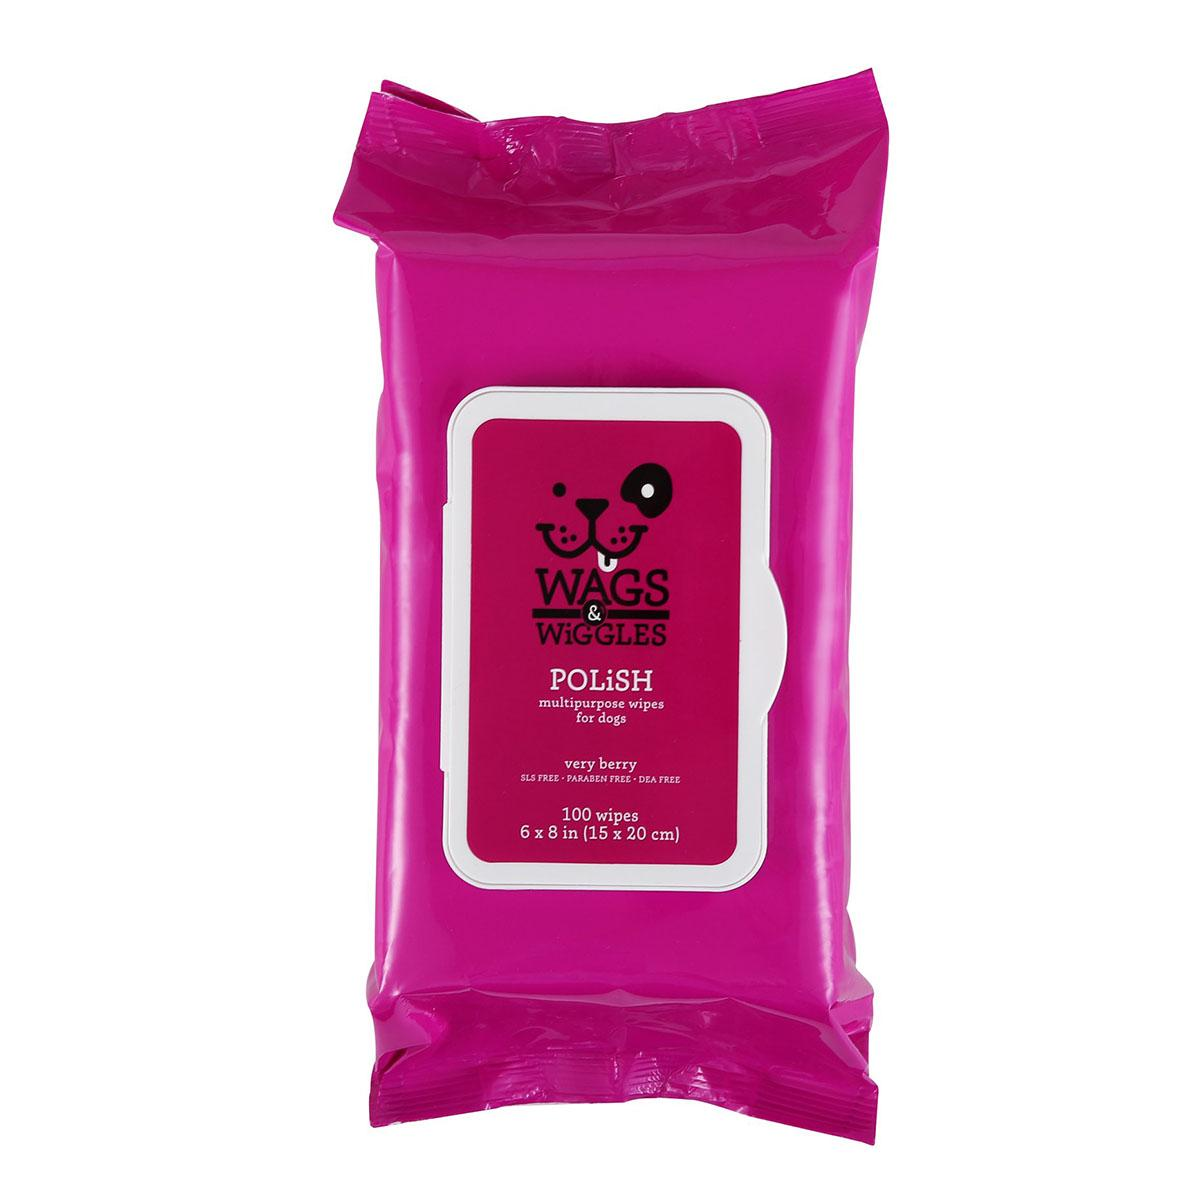 Wags & Wiggles Polish Multipurpose Wipes - Very Berry